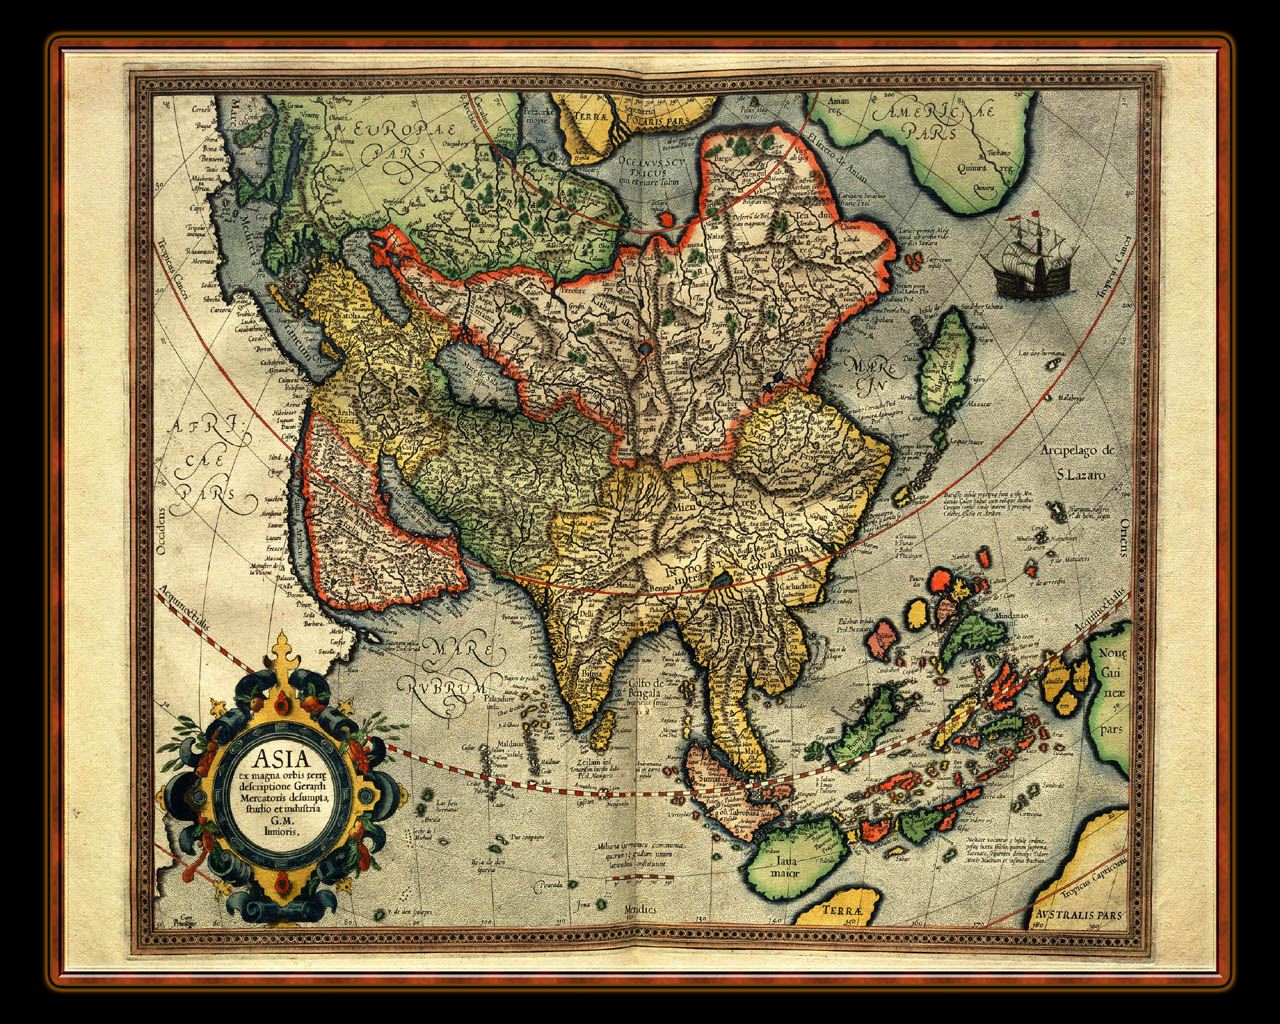 """Gerhard Mercator 1595 World Atlas - Cosmographicae"" - Wallpaper No. 103 of 106. Right click for saving options."